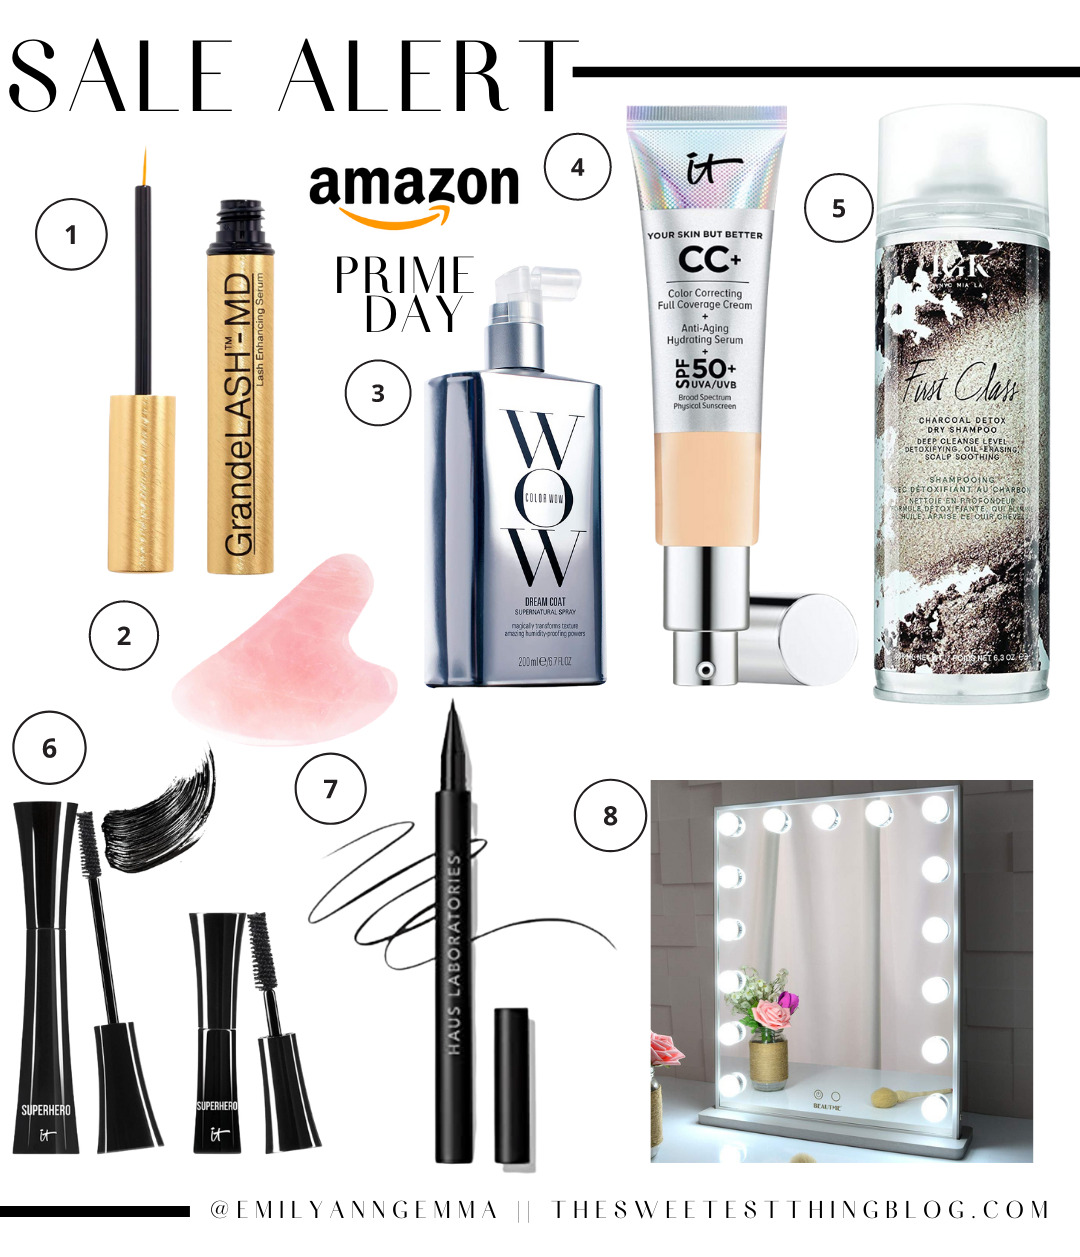 Amazon Prime Day by popular US life and Style blog, The Sweetest Thing: collage image of Grande LASH-MD, WOW face cream, it Cosmetics cc cream, First Class charcoal detox, rose quartz face stone, it Cosmetics super hero mascara, Haus Laboratories eye liner, and lighted makeup mirror.